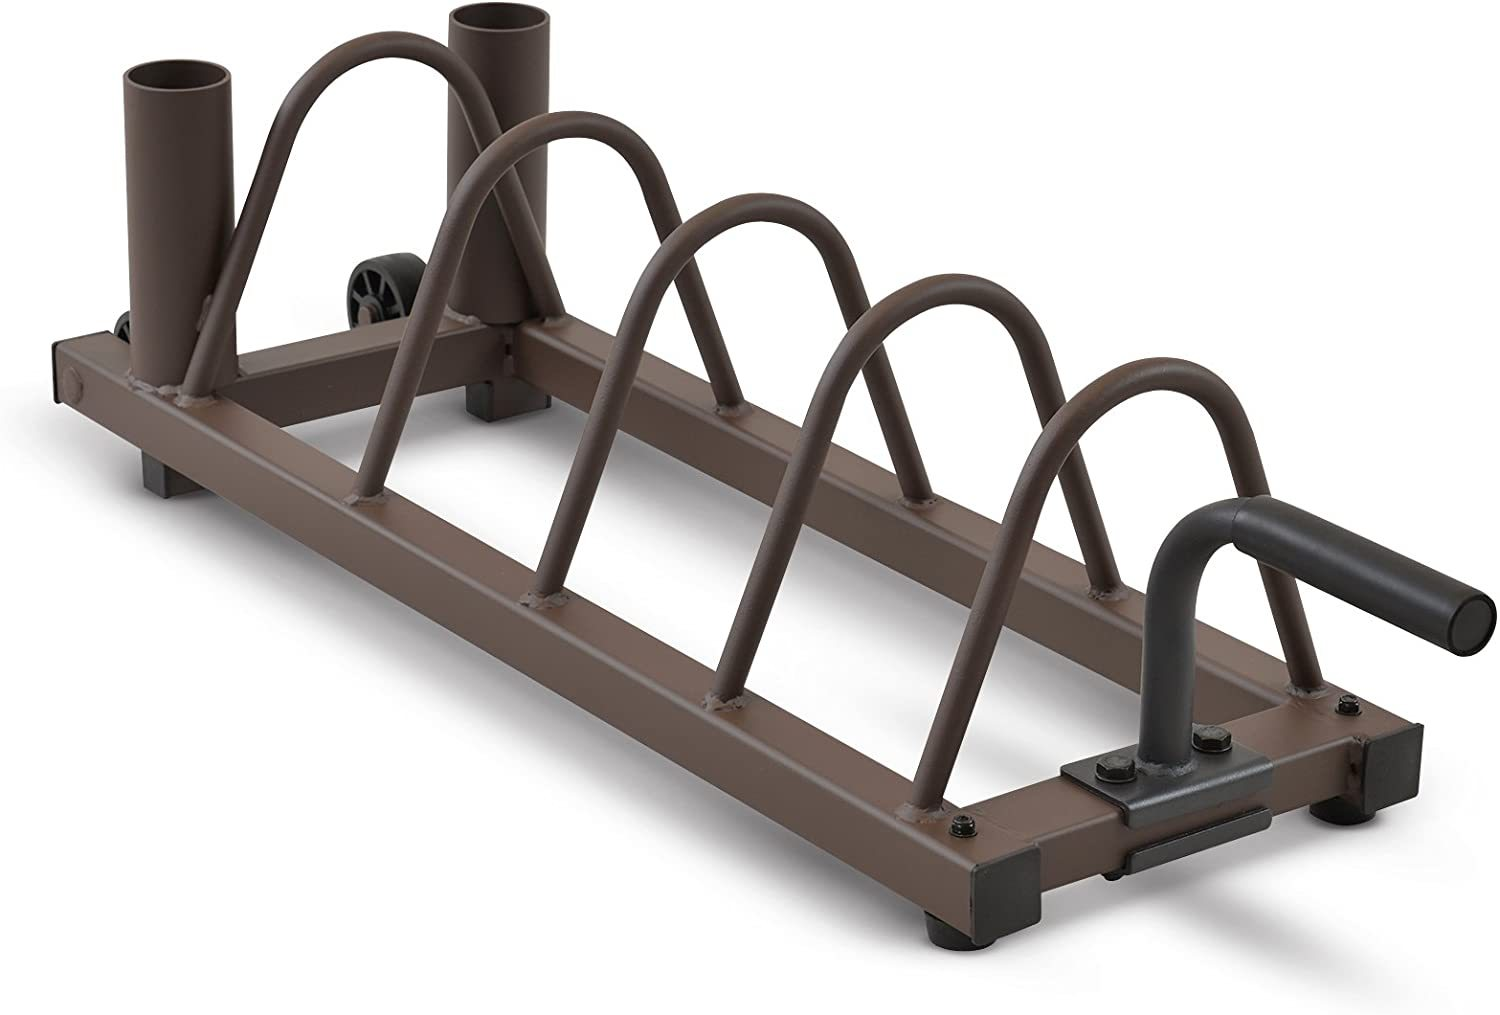 Horizontal Plate and Olympic Bar Rack Organizer with Steel Frame and Transport Wheels STB-0130